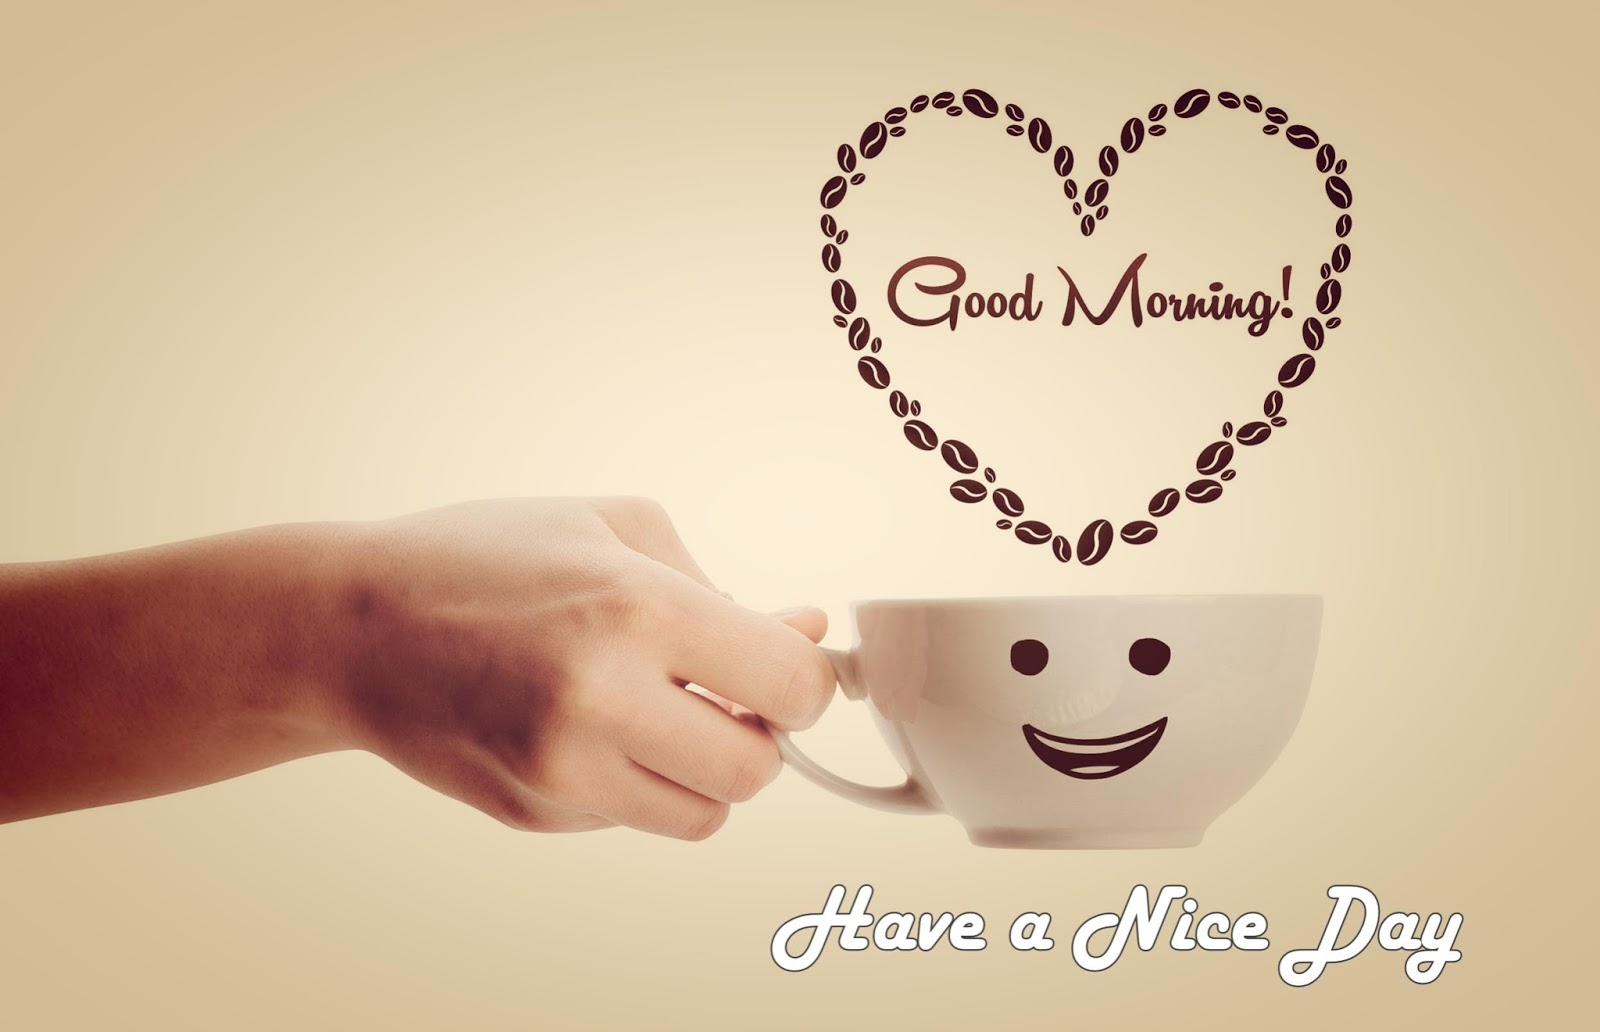 Good Morning Love Images Have a Nice Day